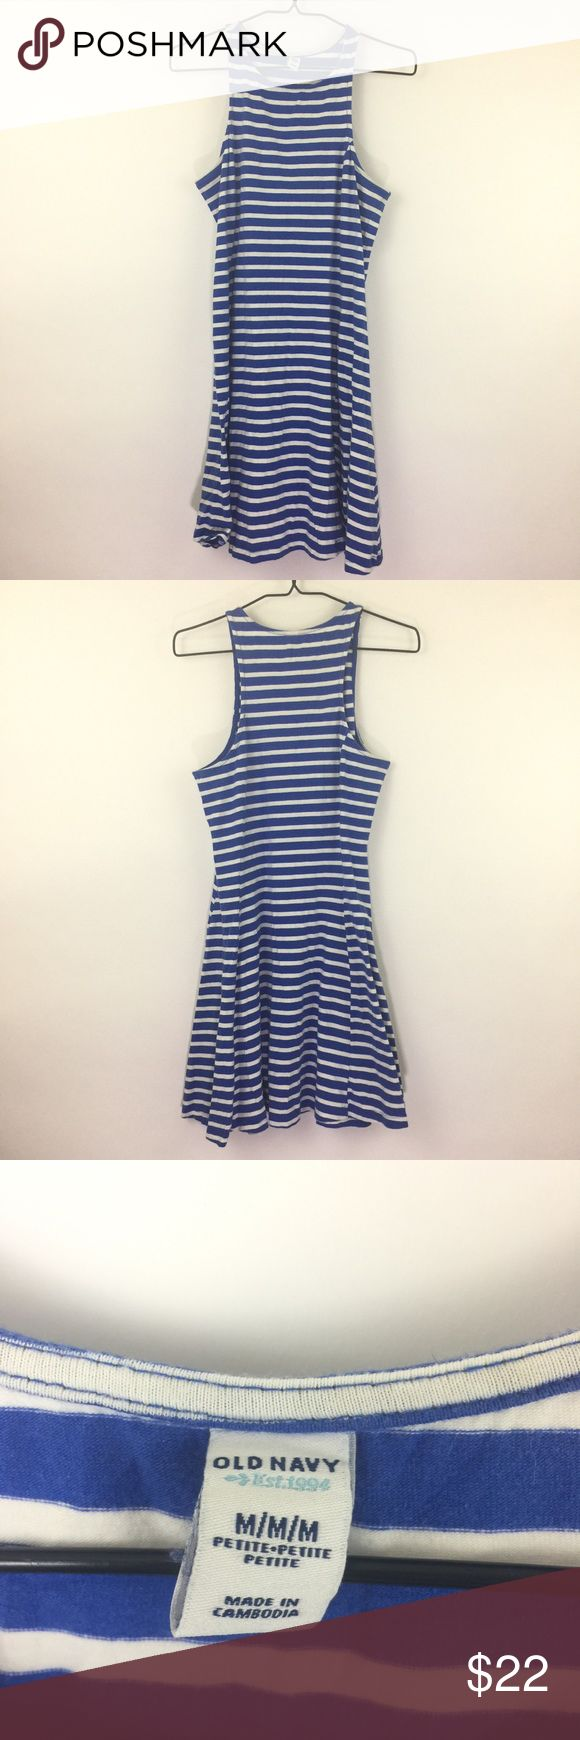 "Old Navy Blue & white striped dress Sz M Pet 550 Old Navy Blue & White Striped Knit Sleeveless A-Line Dress Sz Medium Petite   Measurements: Bust:  17"" Flat Across has some stretch as it is a jersey knit Waist:  15.5"" Flat Across Length:  34""  Long  In good preowned condition with no known flaws and light overall wear. Old Navy Dresses"